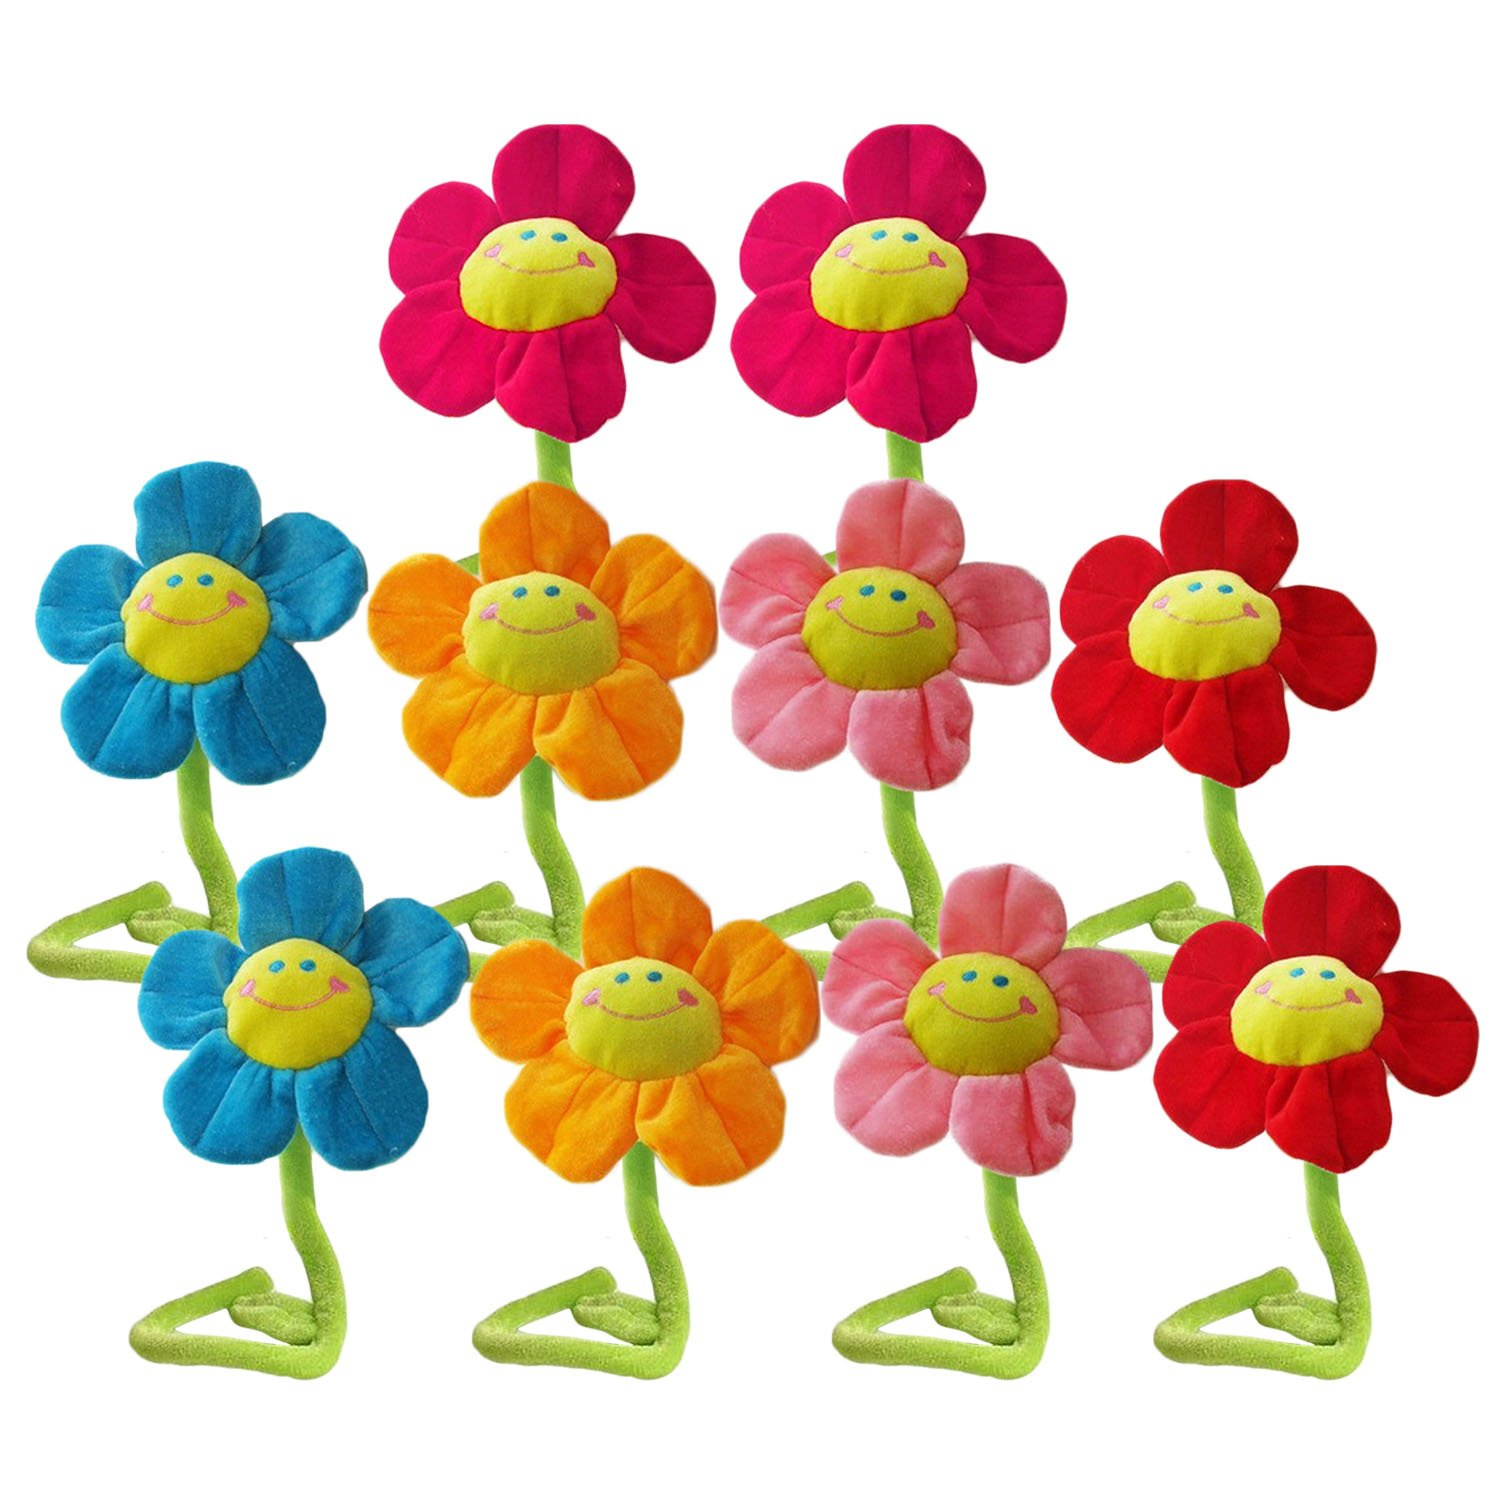 10個32 cm Bendable Plush Smiling Face Daisy Flower Toy人形カーテンバックルランダム色 B0786YD2ZH